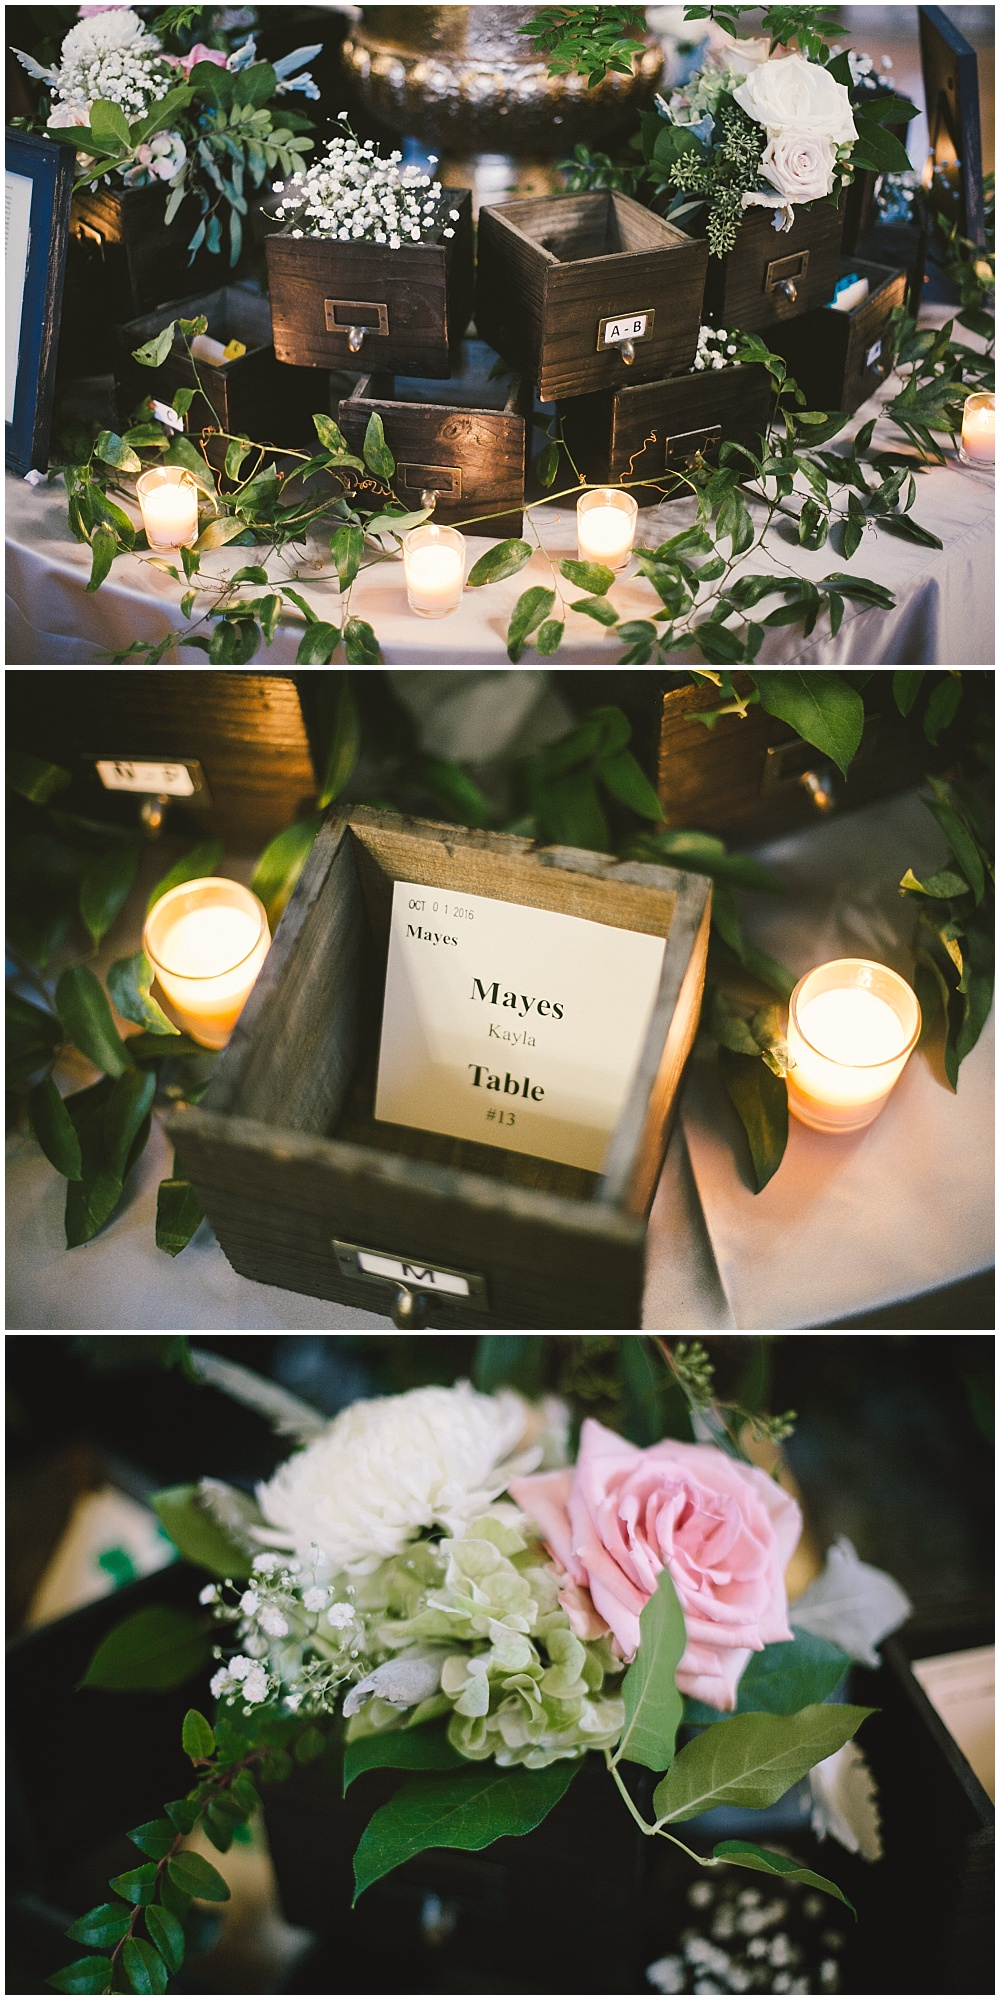 Library boxes with escort cards display | Indianapolis Central Library Wedding by Jennifer Van Elk Photography & Jessica Dum Wedding Coordination